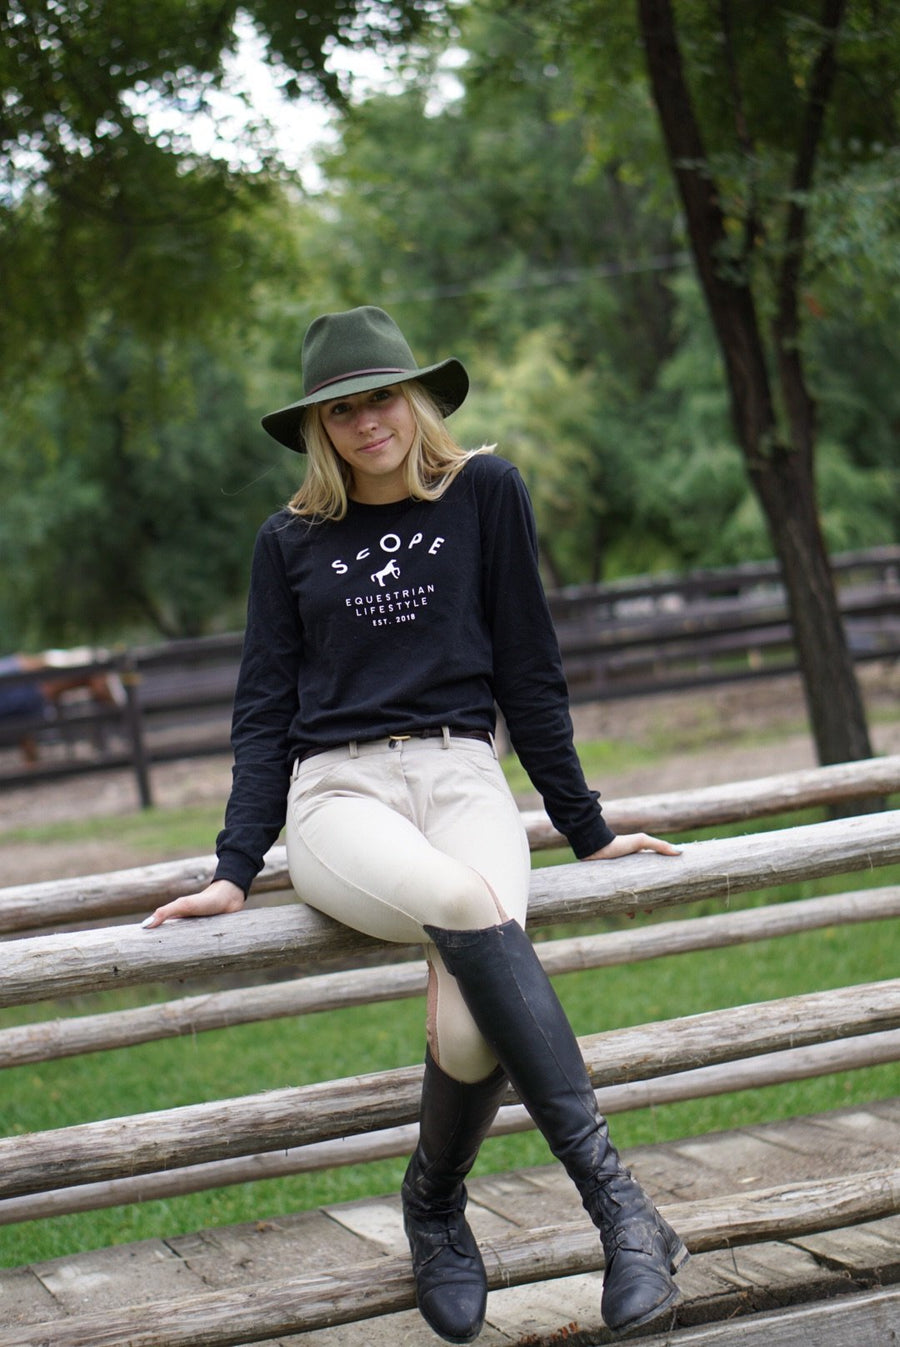 Classic Long Sleeve Tee - Black - Scope Equestrian Lifestyle